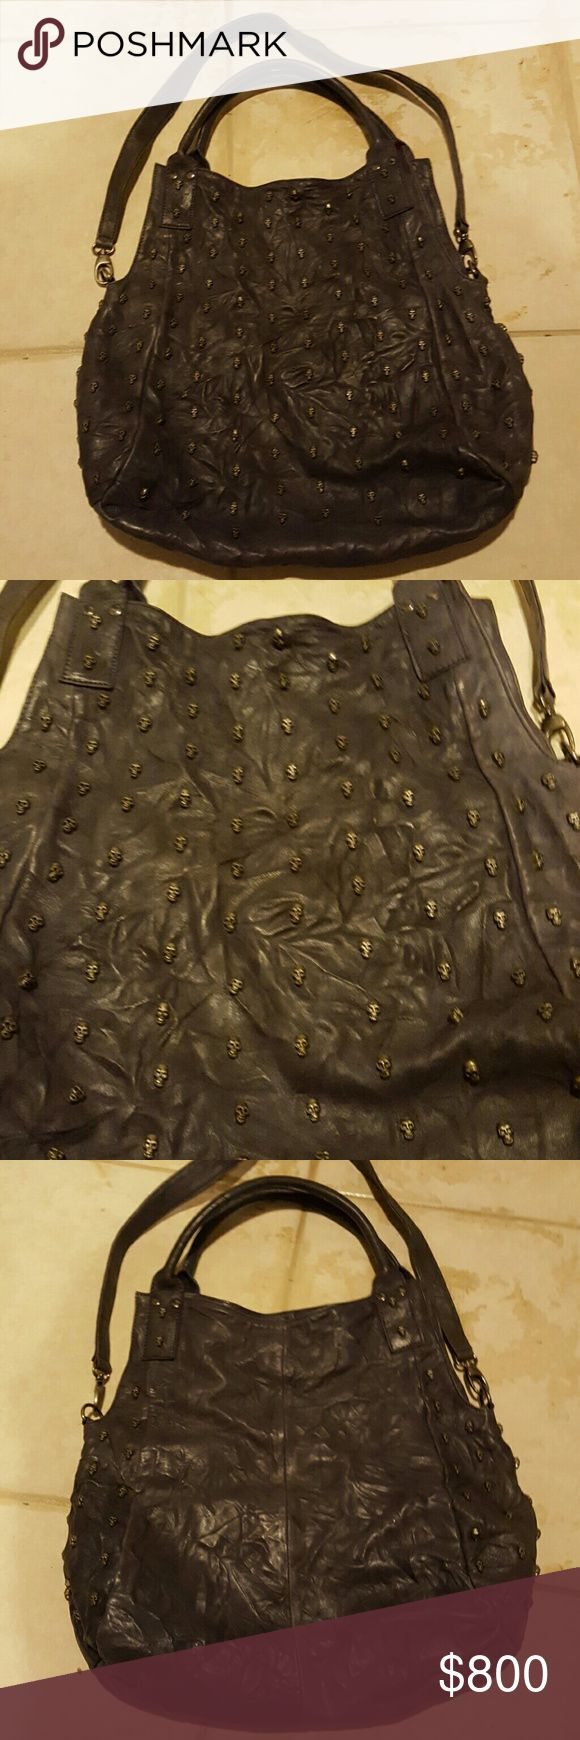 Thomas Wylde Skull Leather Purse Bag Rare Beyond breathtaking! Bag of the century and hard to find.  Authentic Thomas Wylde buttery distressed leather with carefully tooled tiny skulls all over the front.  A muted dusty purple color.  Magnetic top closure.  15 inches x 15 inches.  So stylish.  Treat yourself for that added style kick to your wardrobe.  I live by the beach and have been to scared to carry it so better I sell it to someone who will use it.  Fantastic condition. Thomas Wylde…